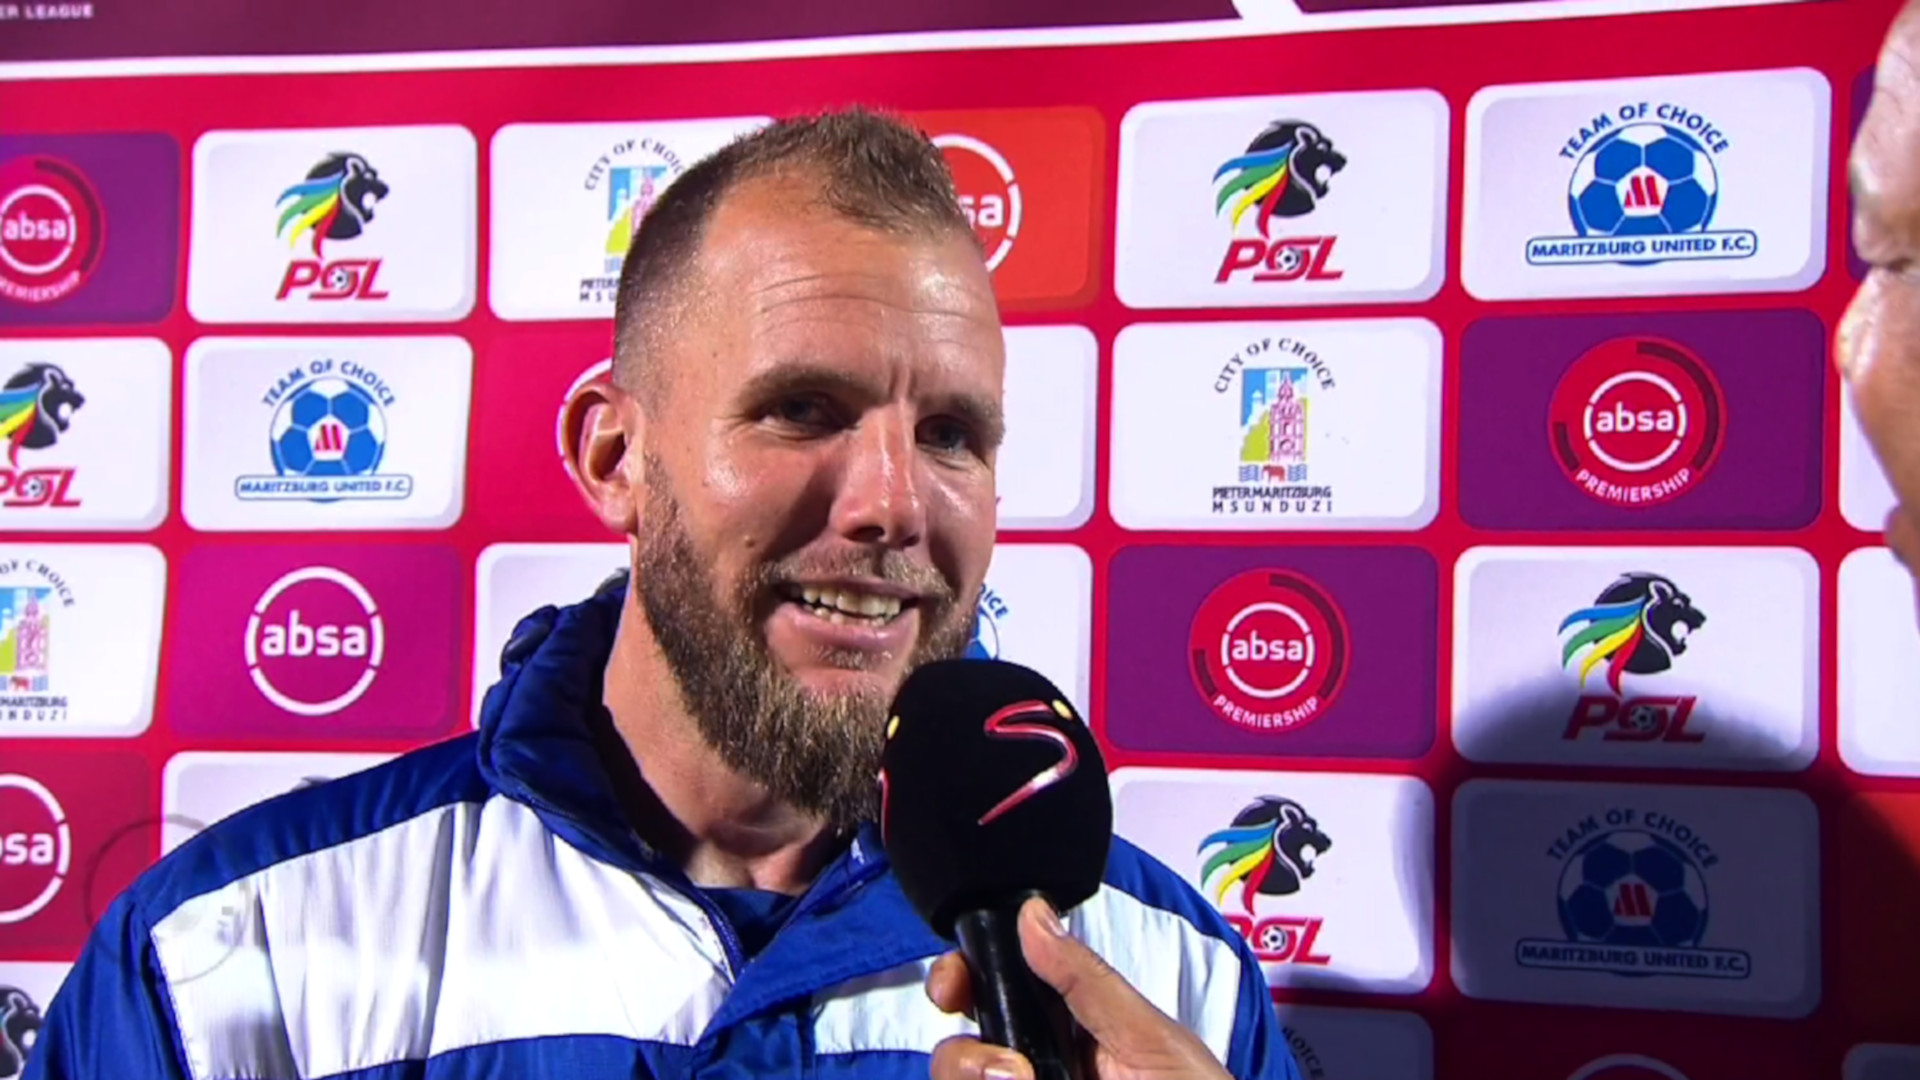 Absa Premiership | Maritzburg United v Chippa United | Post-match interview with Jeremy Brockie